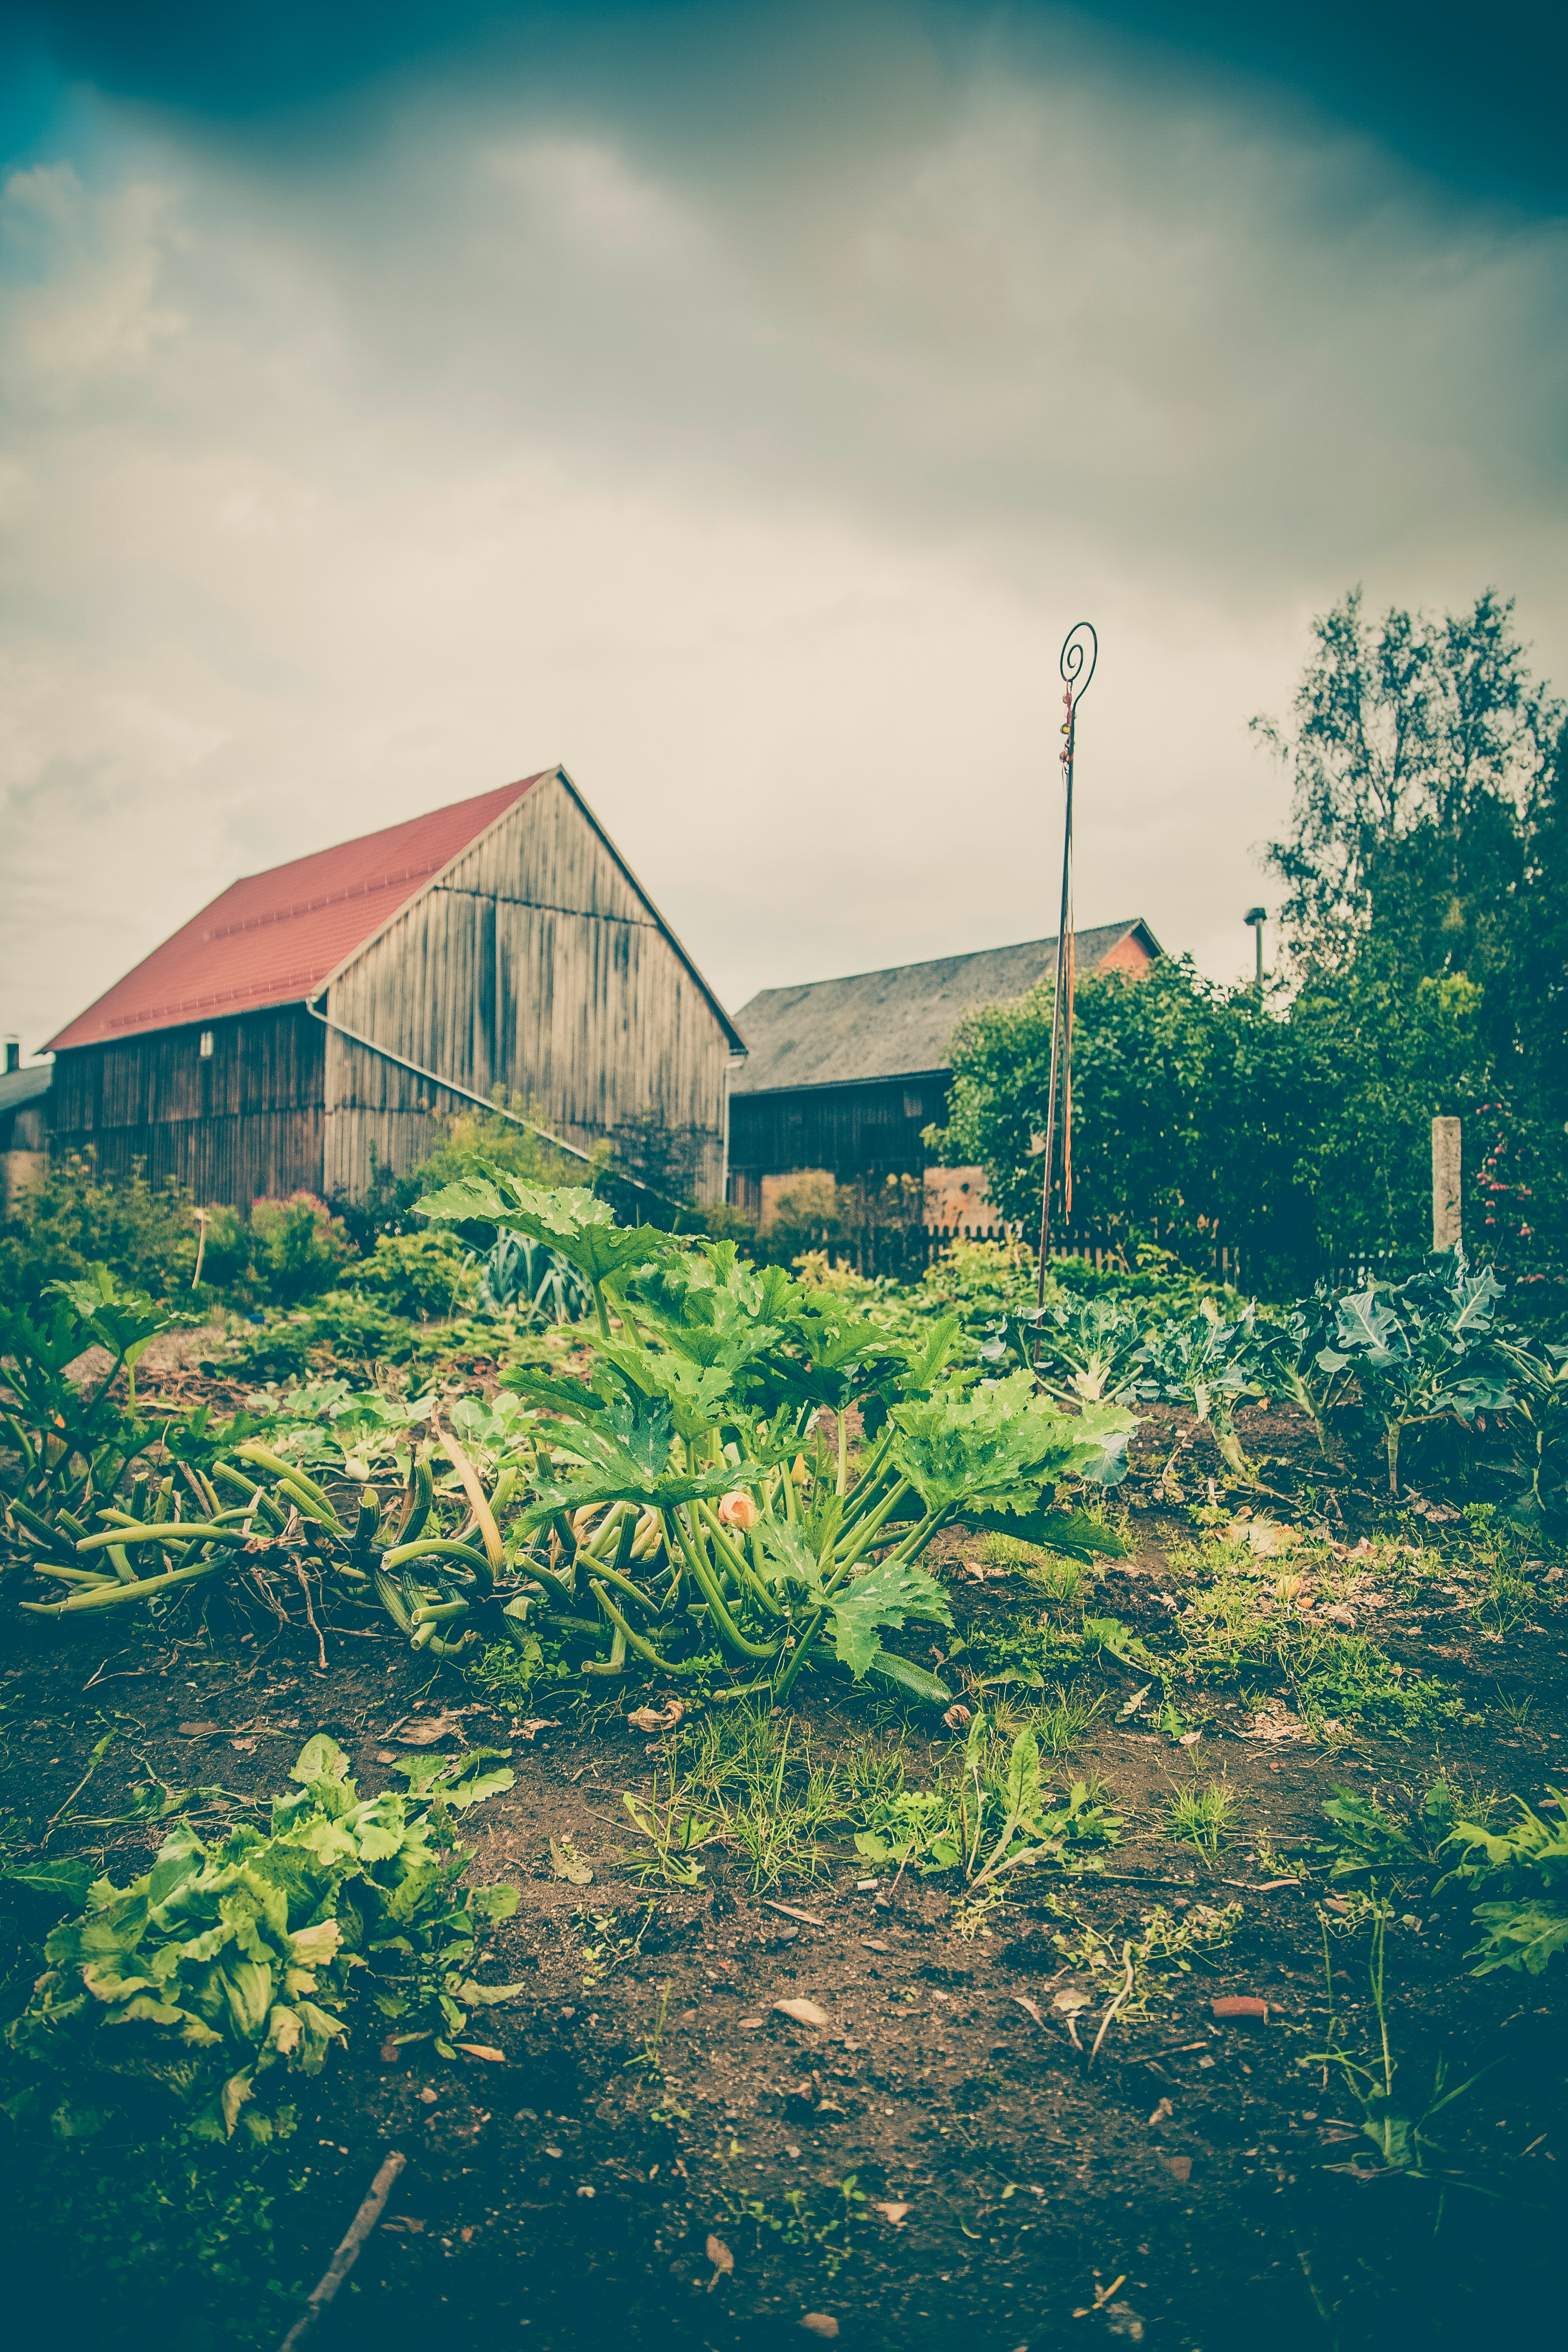 Green Plants Near White and Red Wooden House Under Dramatic Clouds during Daytime, Countryside, Garden, Houses, Vegetables, HQ Photo